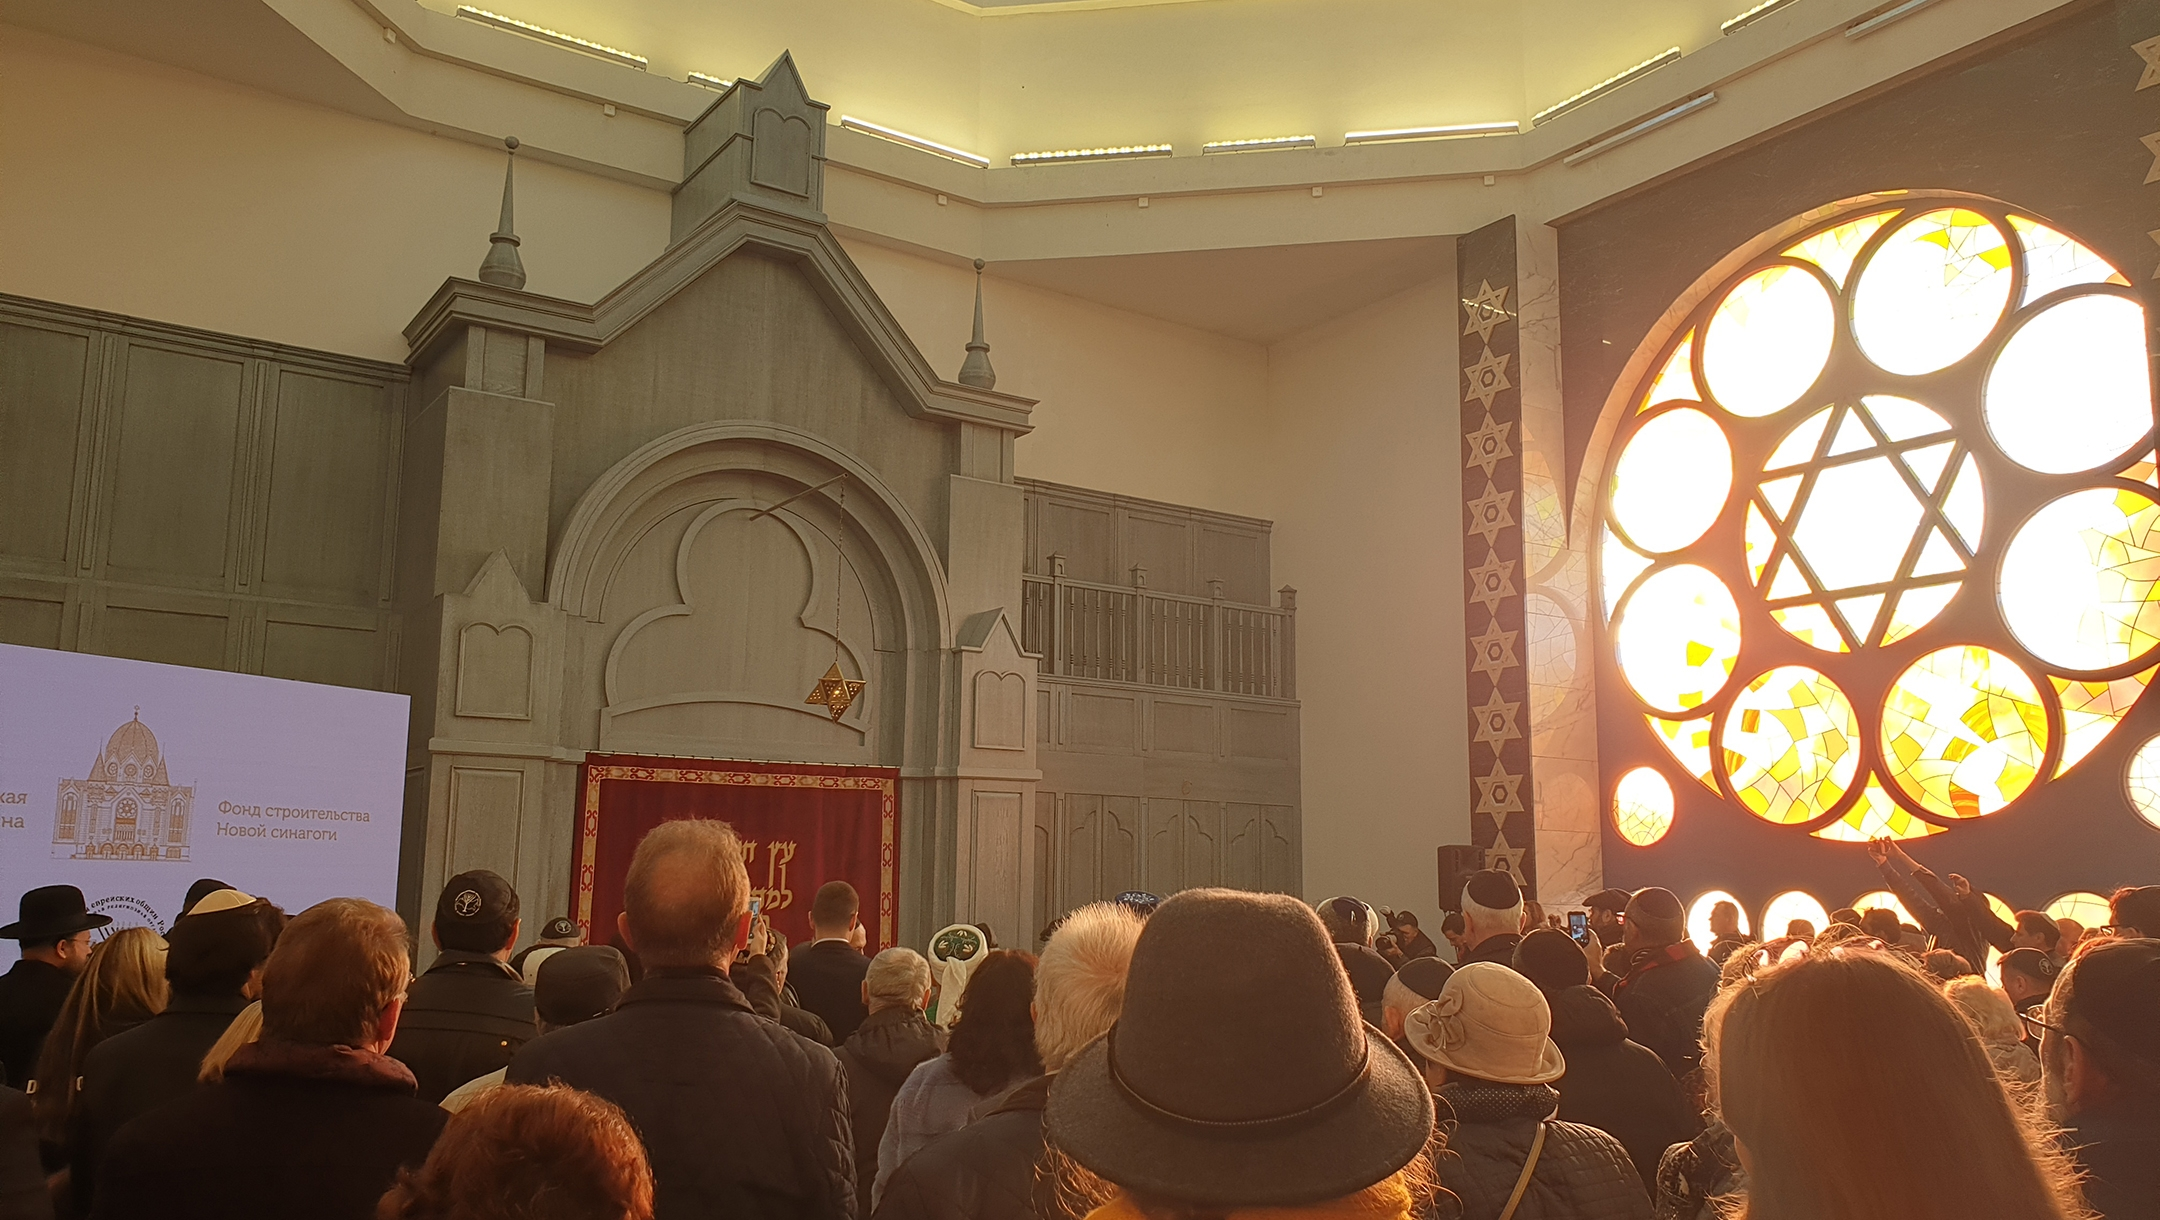 The inauguration of Koenigsberg's New Synagogue in Kaliningrad, Russia, took place 80 years after Nazis destroyed the building in the 1938 Kristallnacht pogroms, Nov. 8, 2018. (Cnaan Liphshiz)